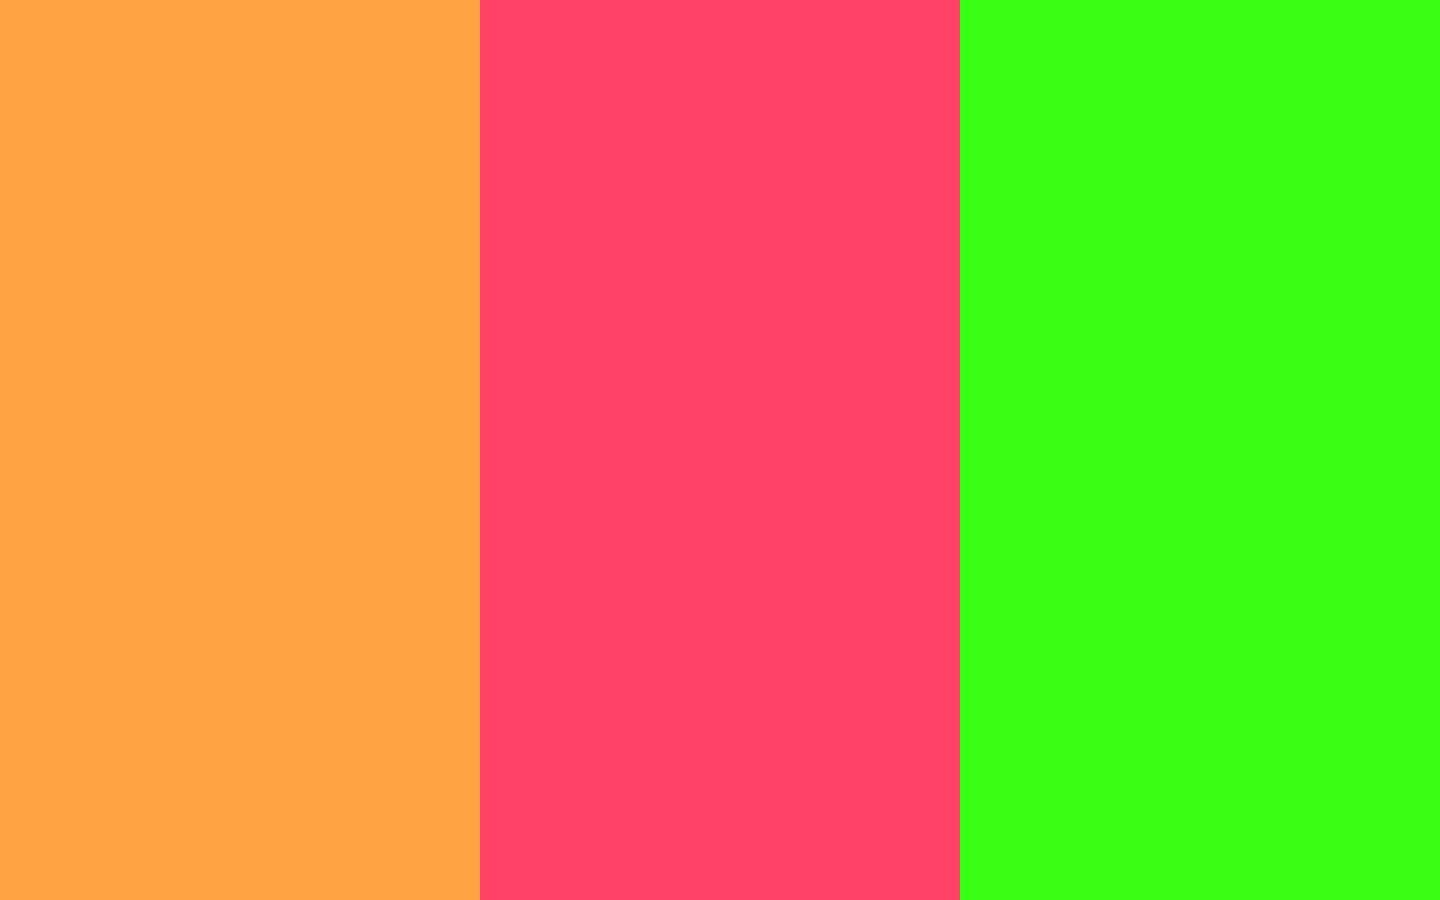 neon carrot neon fuchsia neon green three color backgroundjpg 1440x900